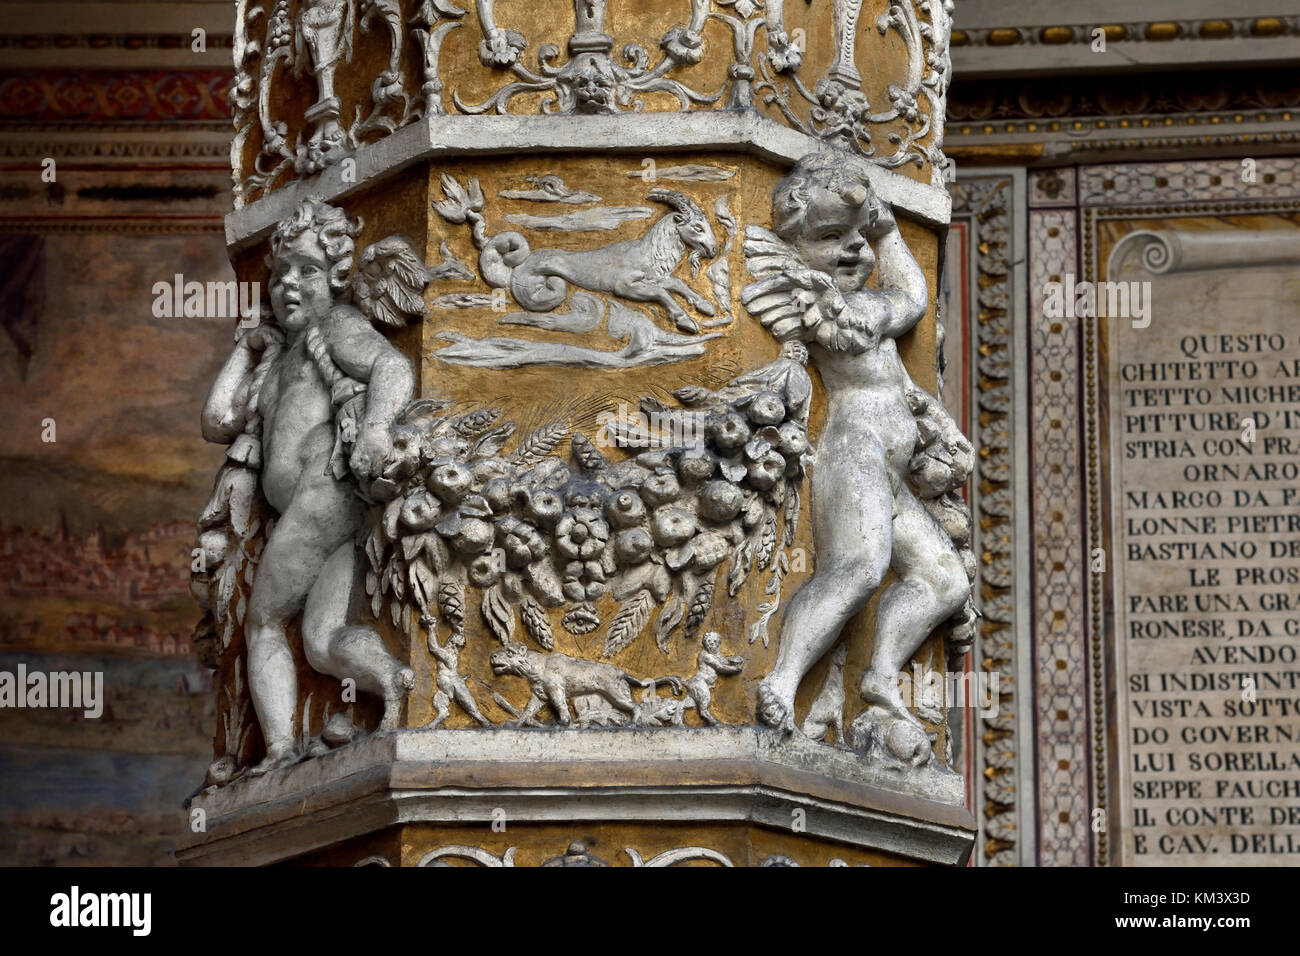 The Palazzo Vecchio in the 'Piazza della Signora' Florence Tuscany Italy - First courtyard with Putto with - Stock Image